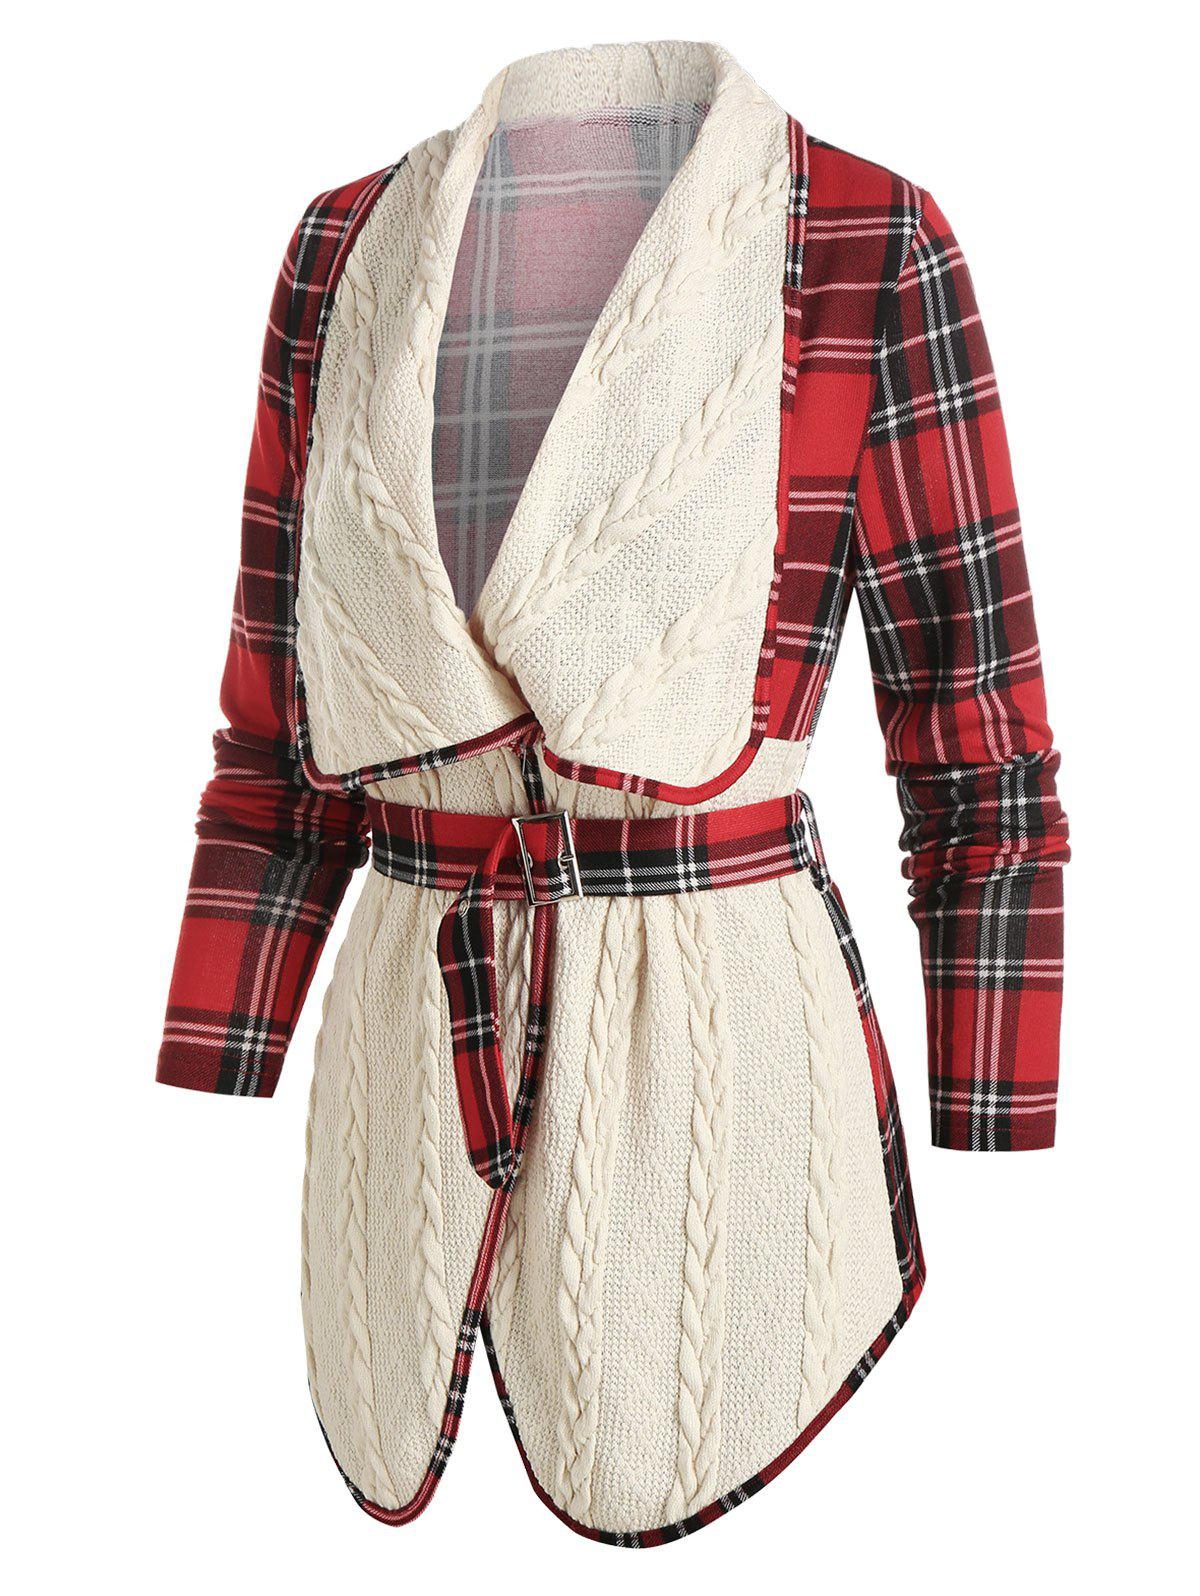 Plaid Print Cable Knit Belted Jacket - WARM WHITE 3XL